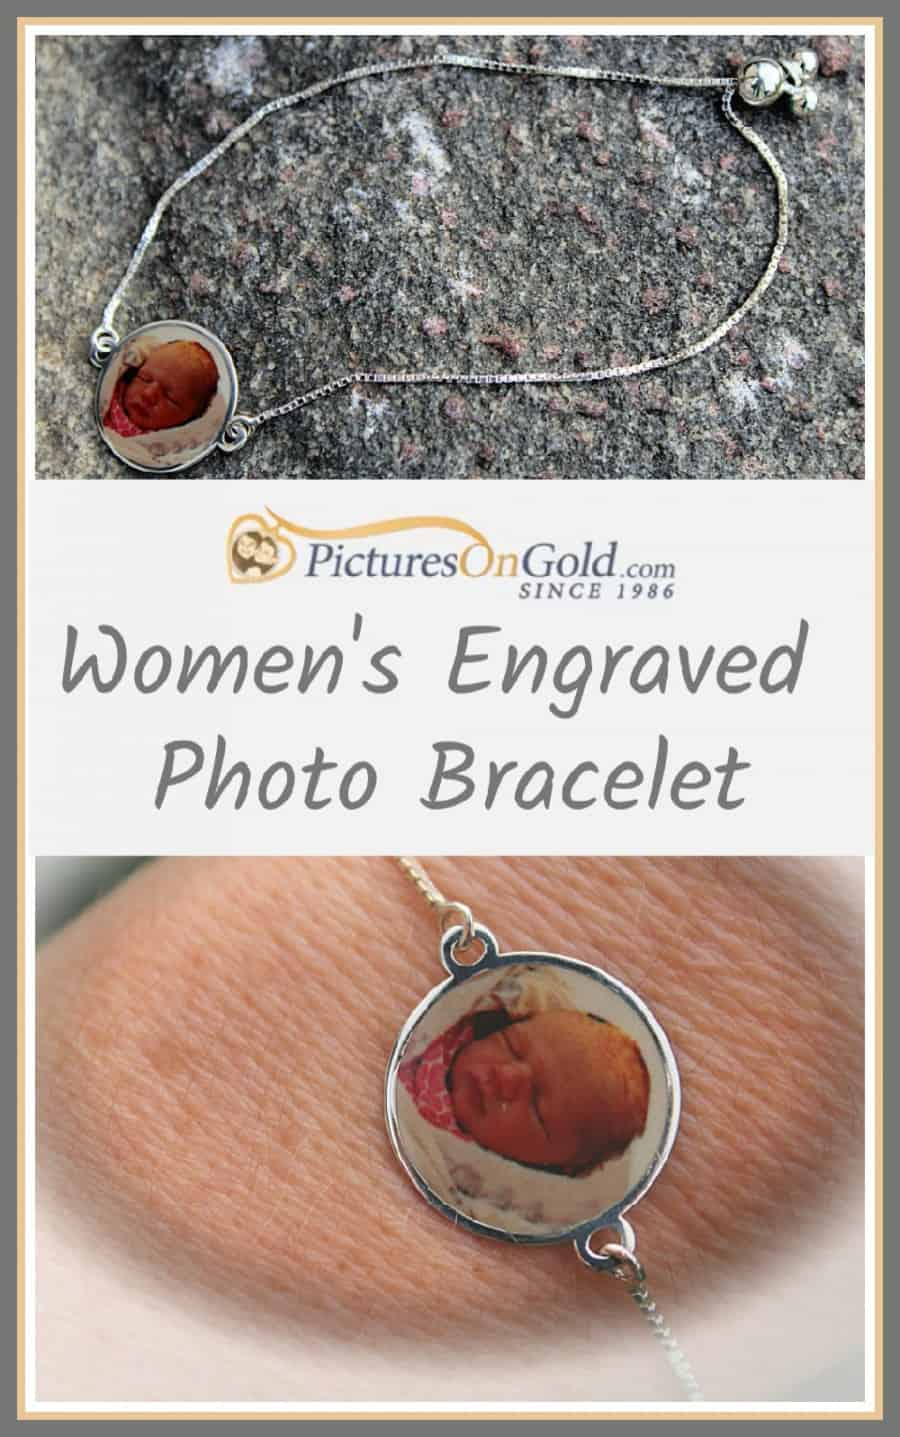 PicturesOnGold.com Women's Engraved Photo Bracelet Review